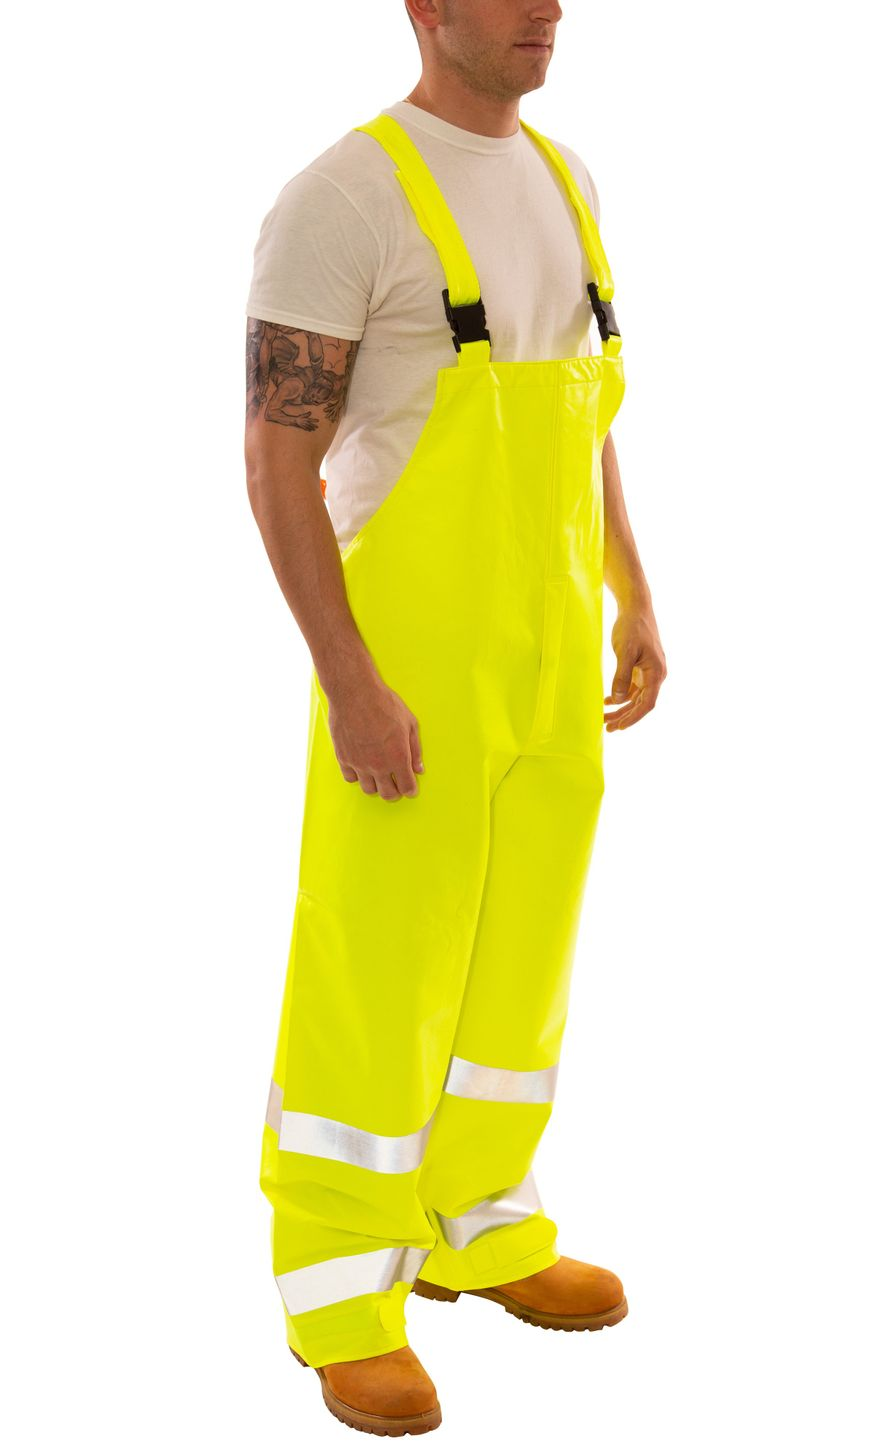 tingley-eclipse-arc-flash-and-fire-resistant-overalls-pvc-on-nomex-chemical-resistant-class-3-hi-vis-fluorescent-yellow-green-side.jpg